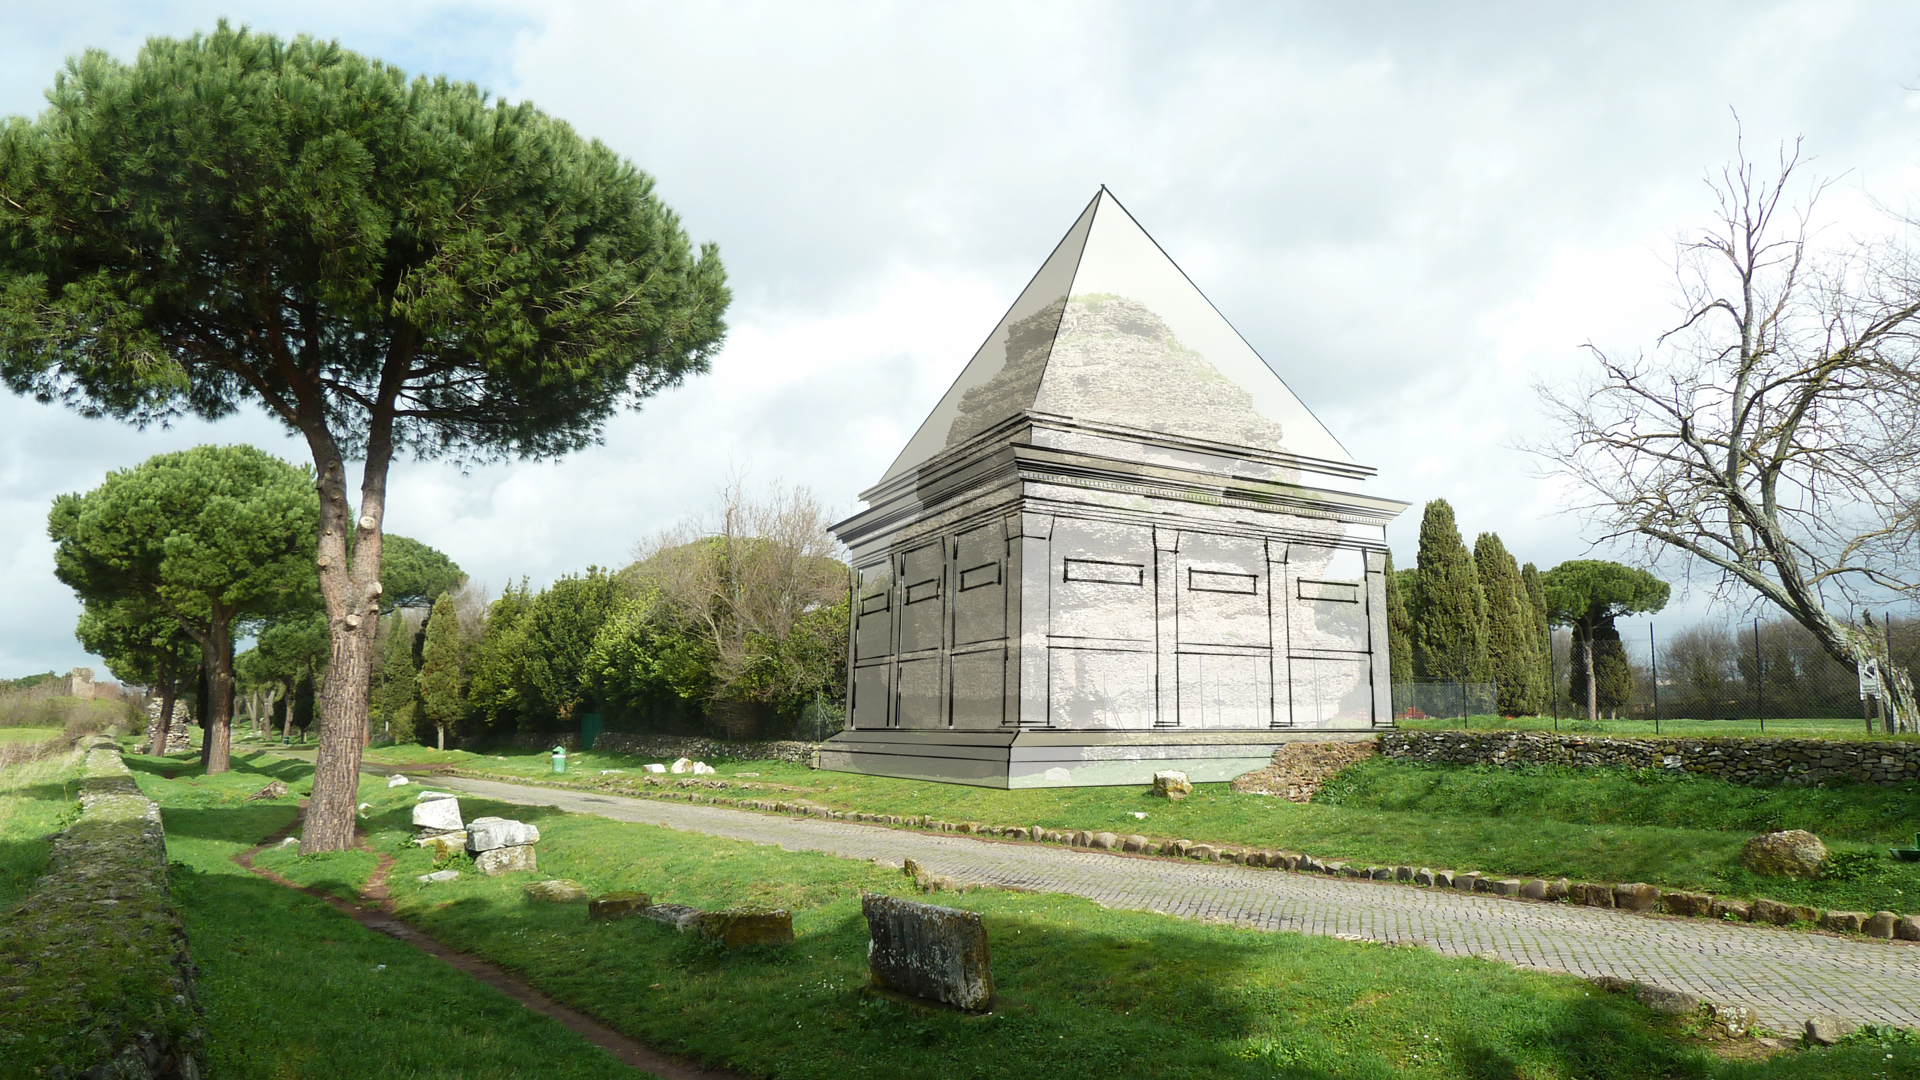 © RENS DE HOND - https://www.academia.edu/9051717/A_Pyramidal_Structure_along_the_Via_Appia_Documentation_and_reconstruction